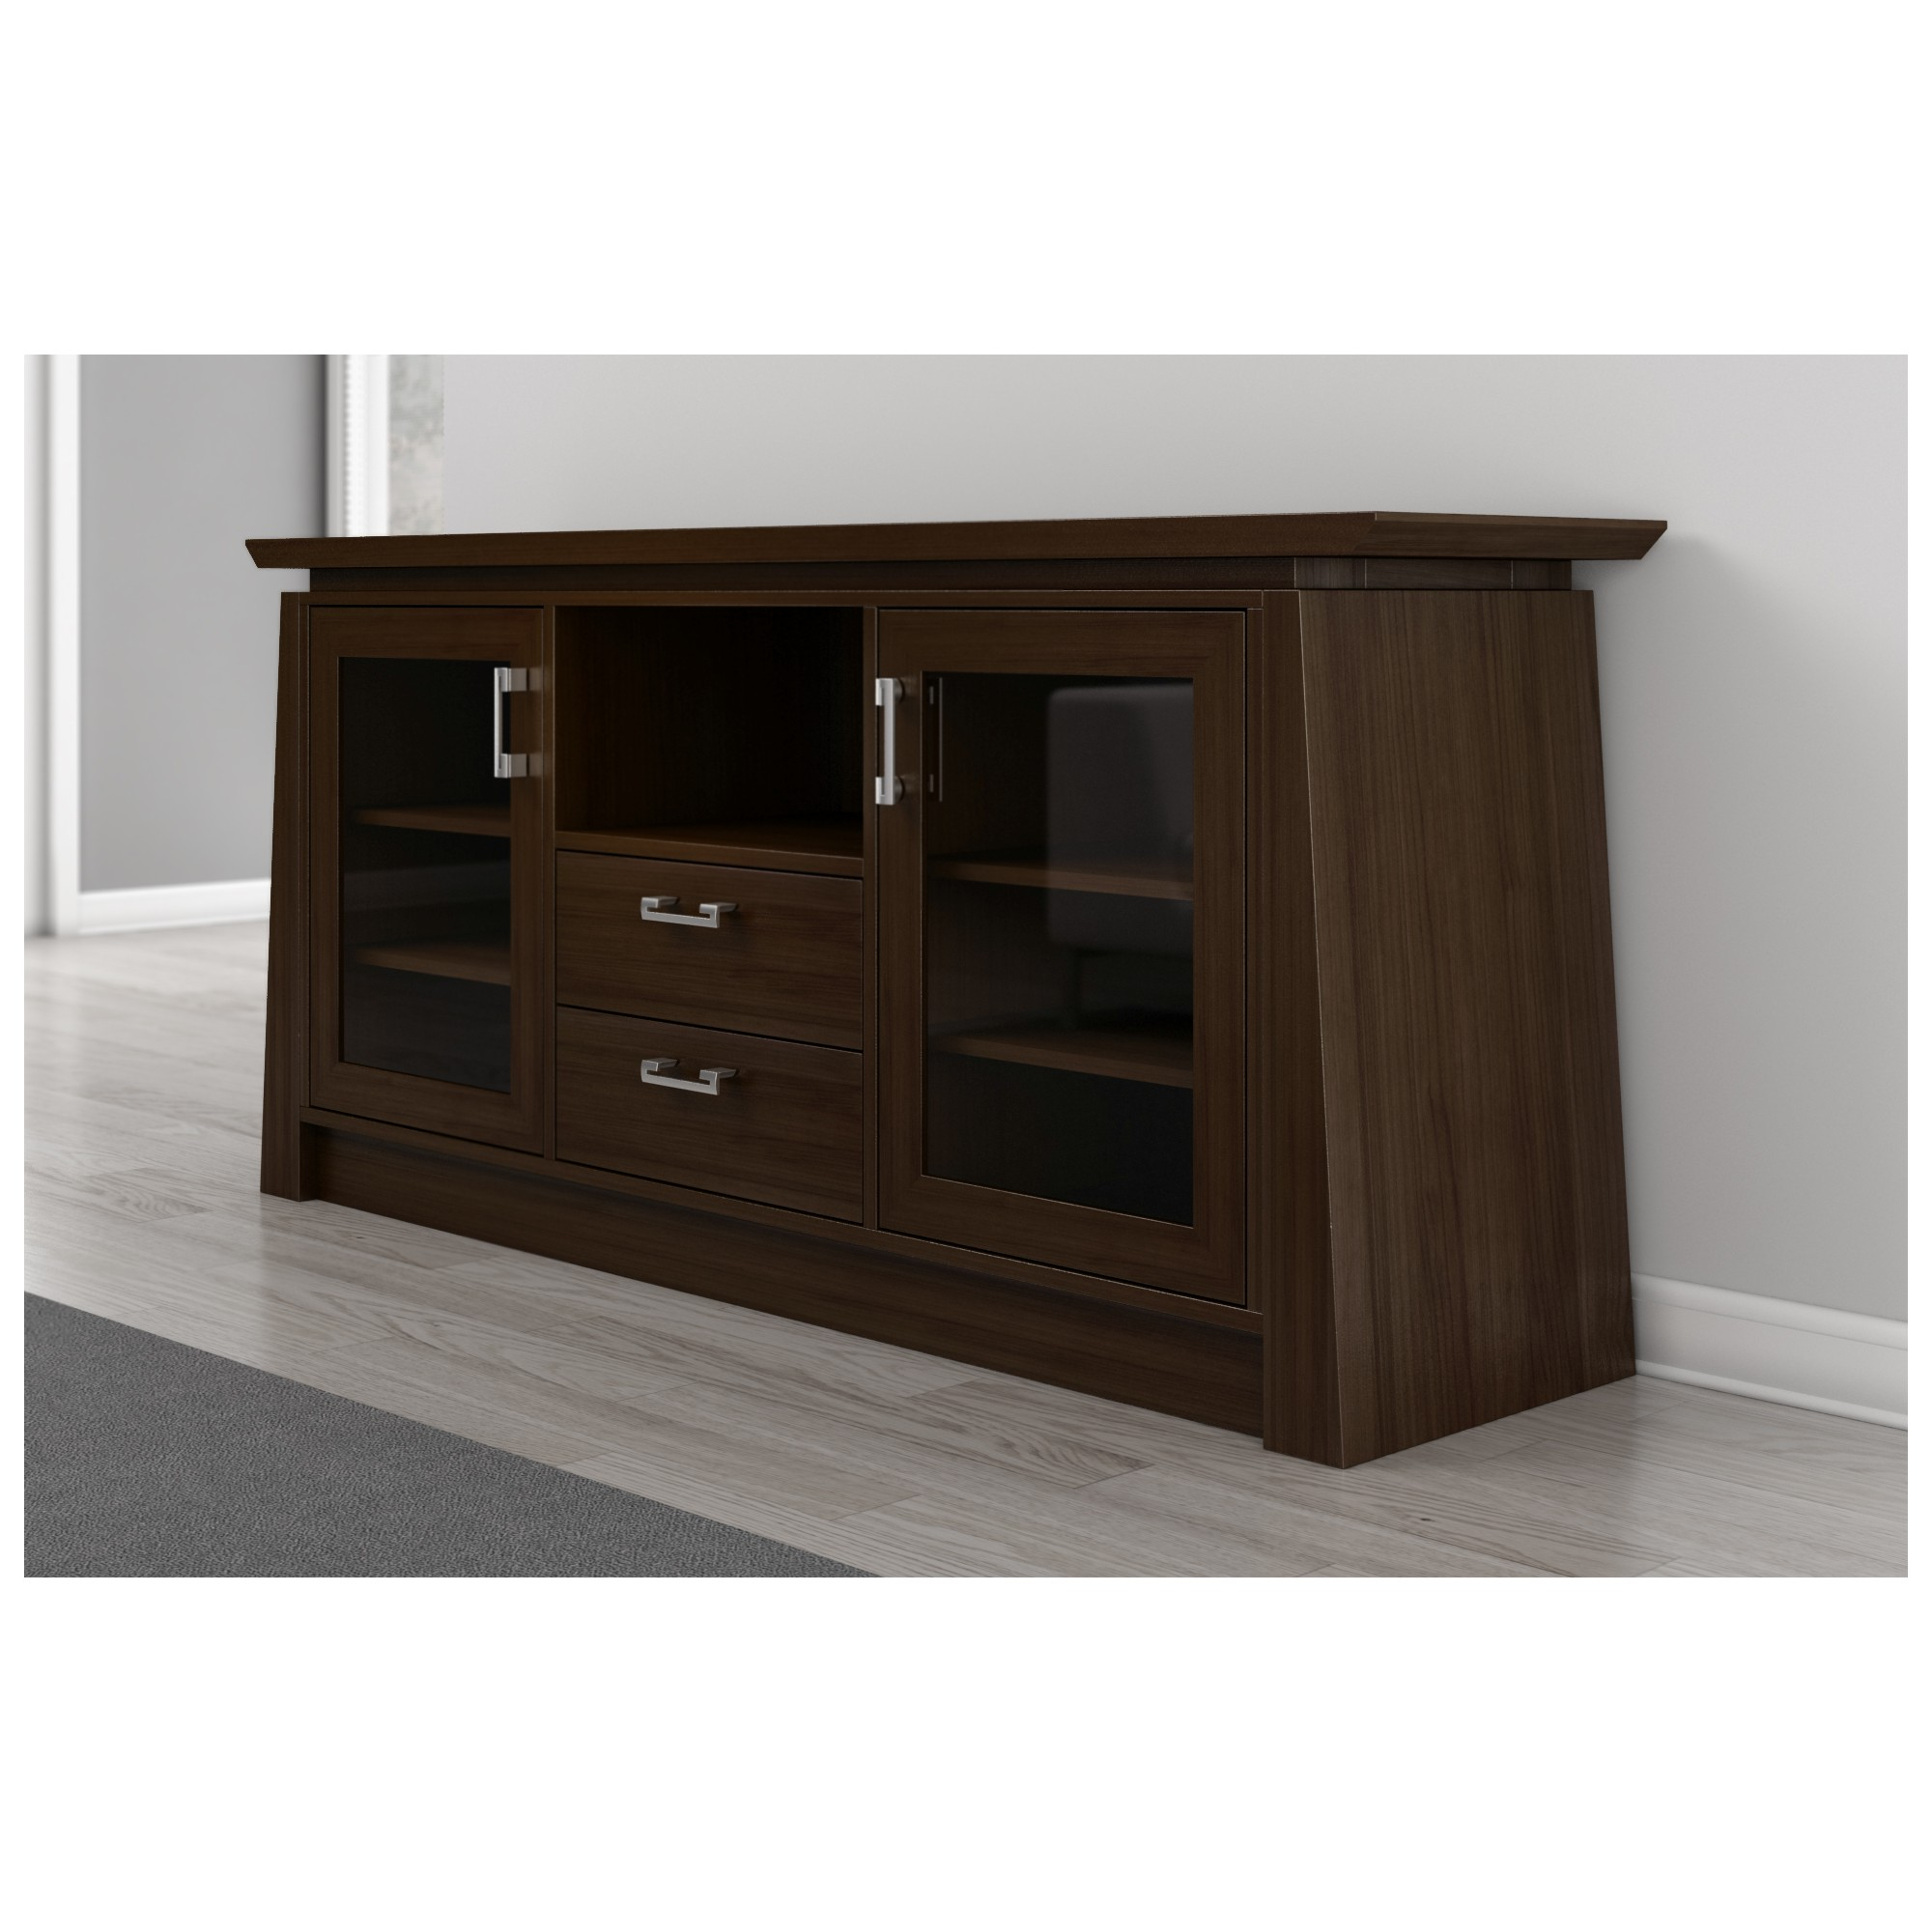 Splendent Larger Tv Stands Entertainment Centers In Elroy Tv Stand Pertaining To Popular Asian Tv Cabinets (View 16 of 20)